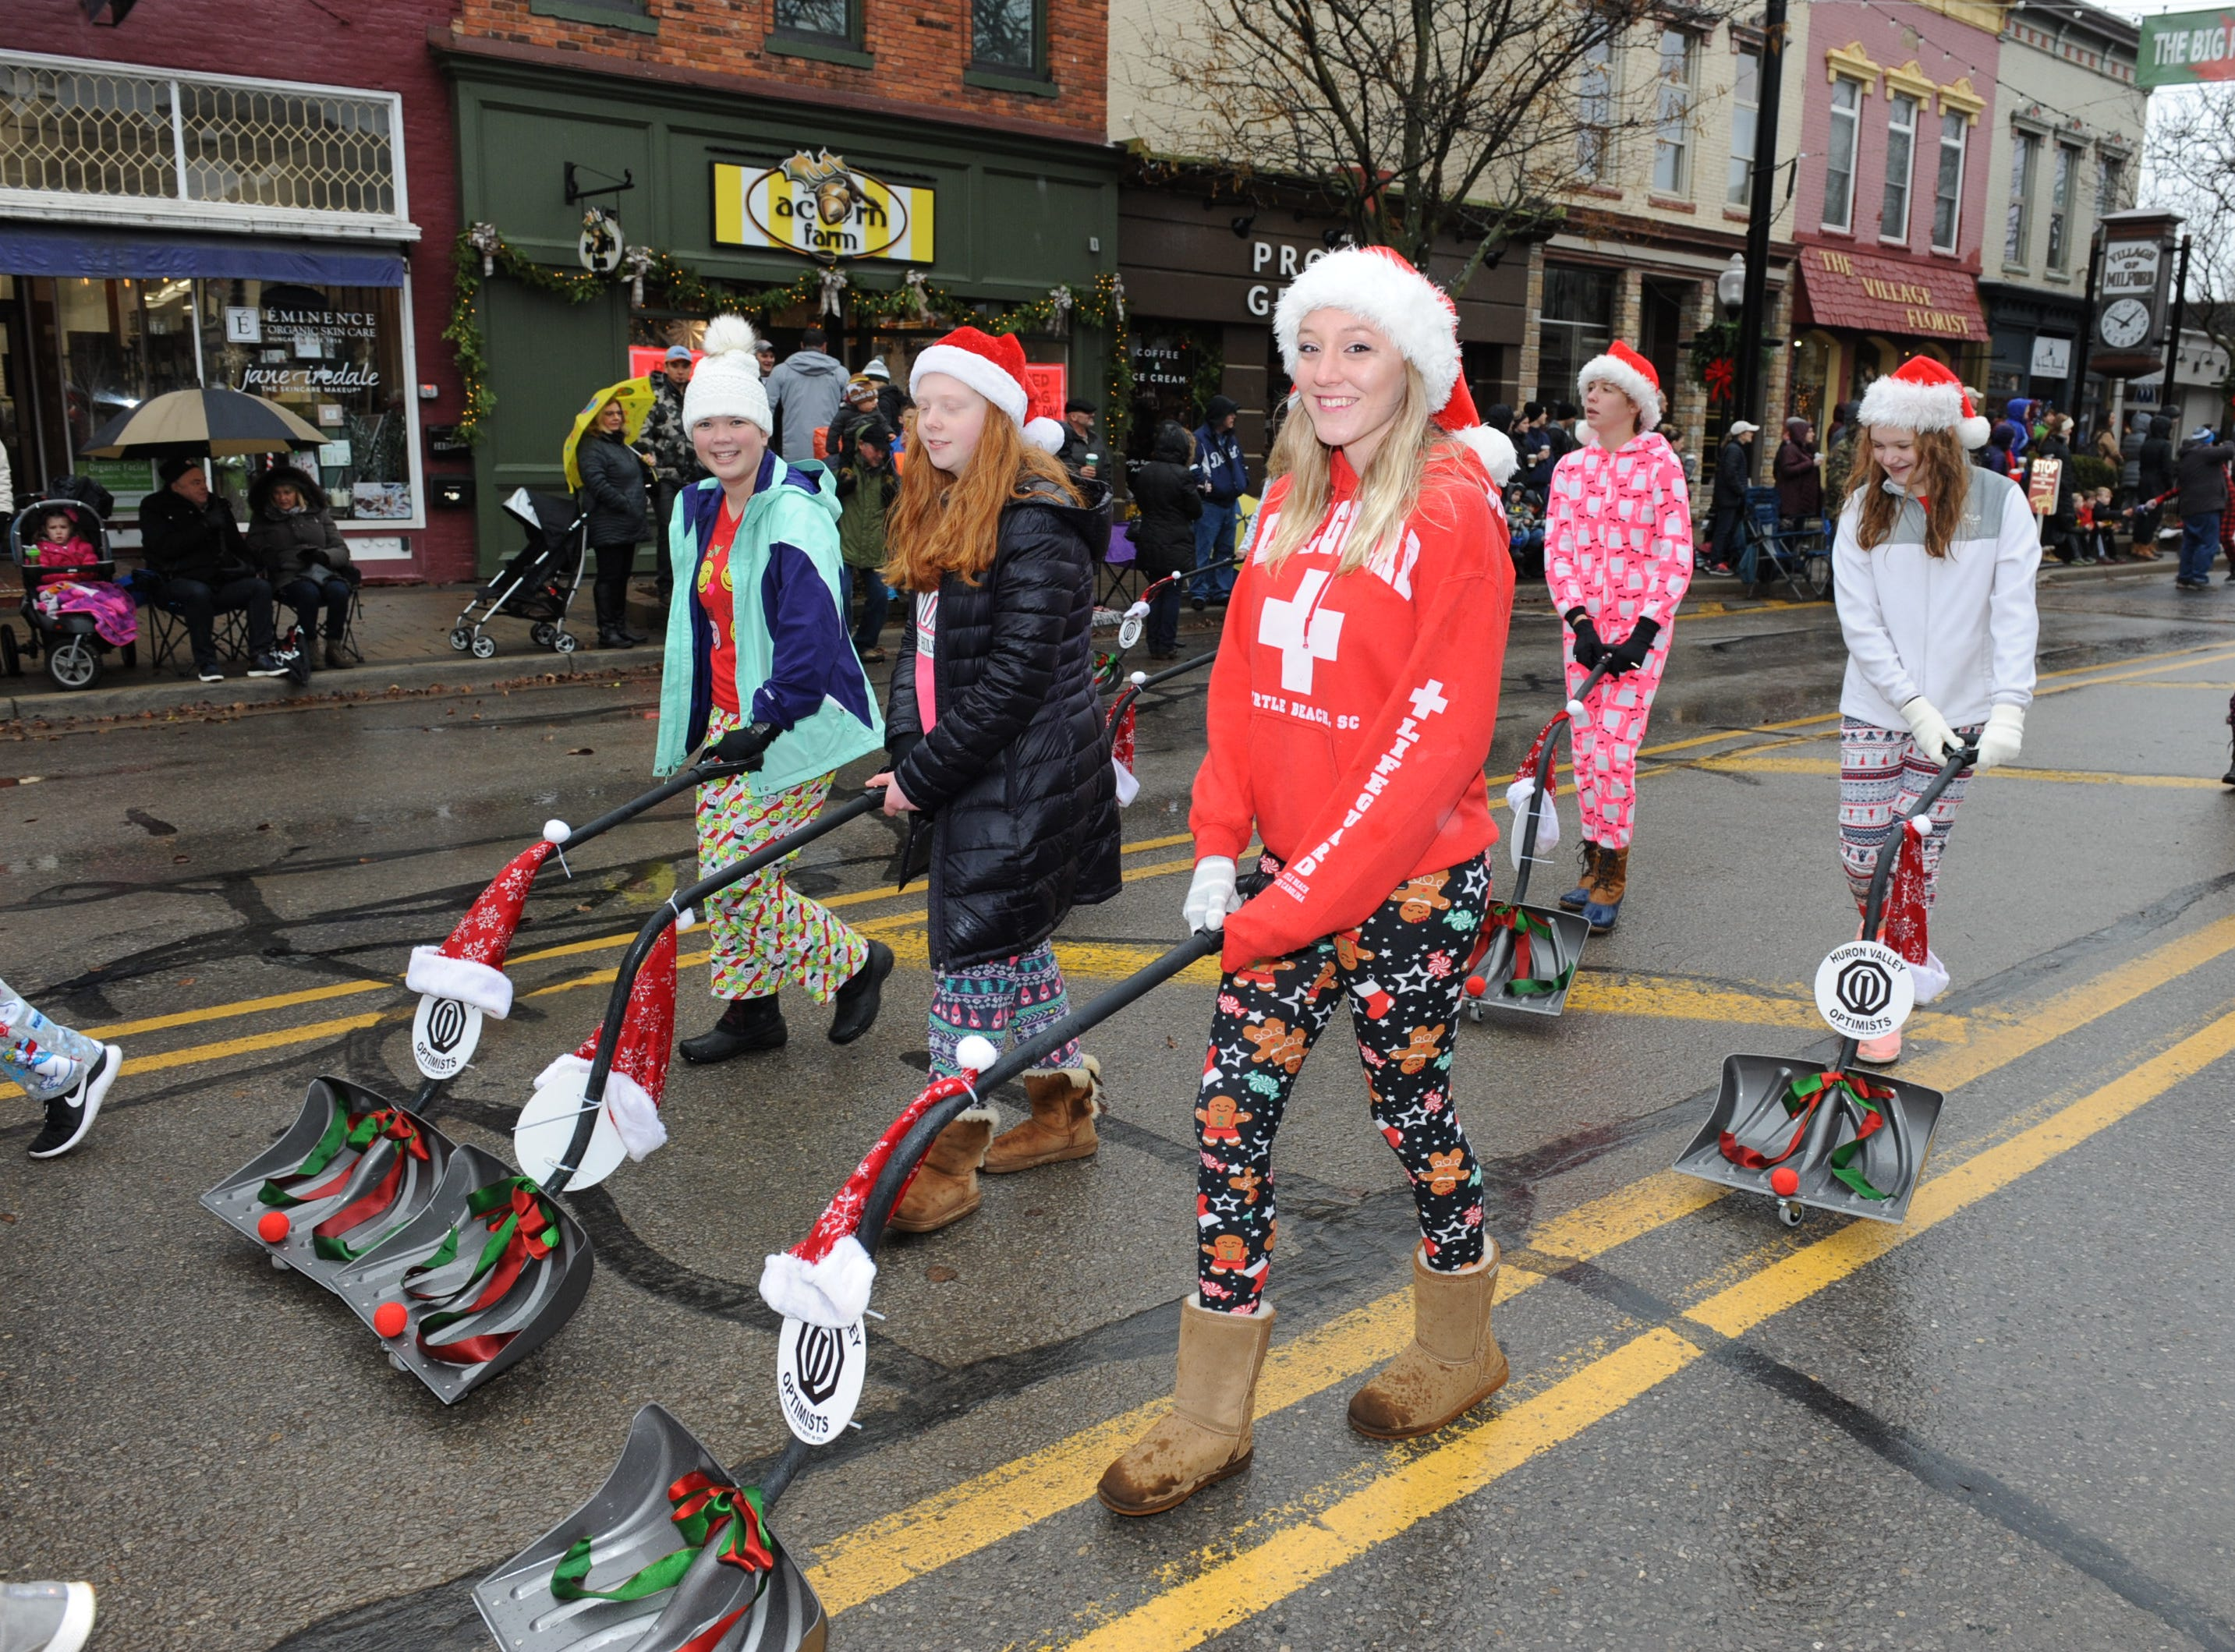 Ladies from the Huron Valley Optimists were ready for the snow as they marched in the Christmas parade in Milford.